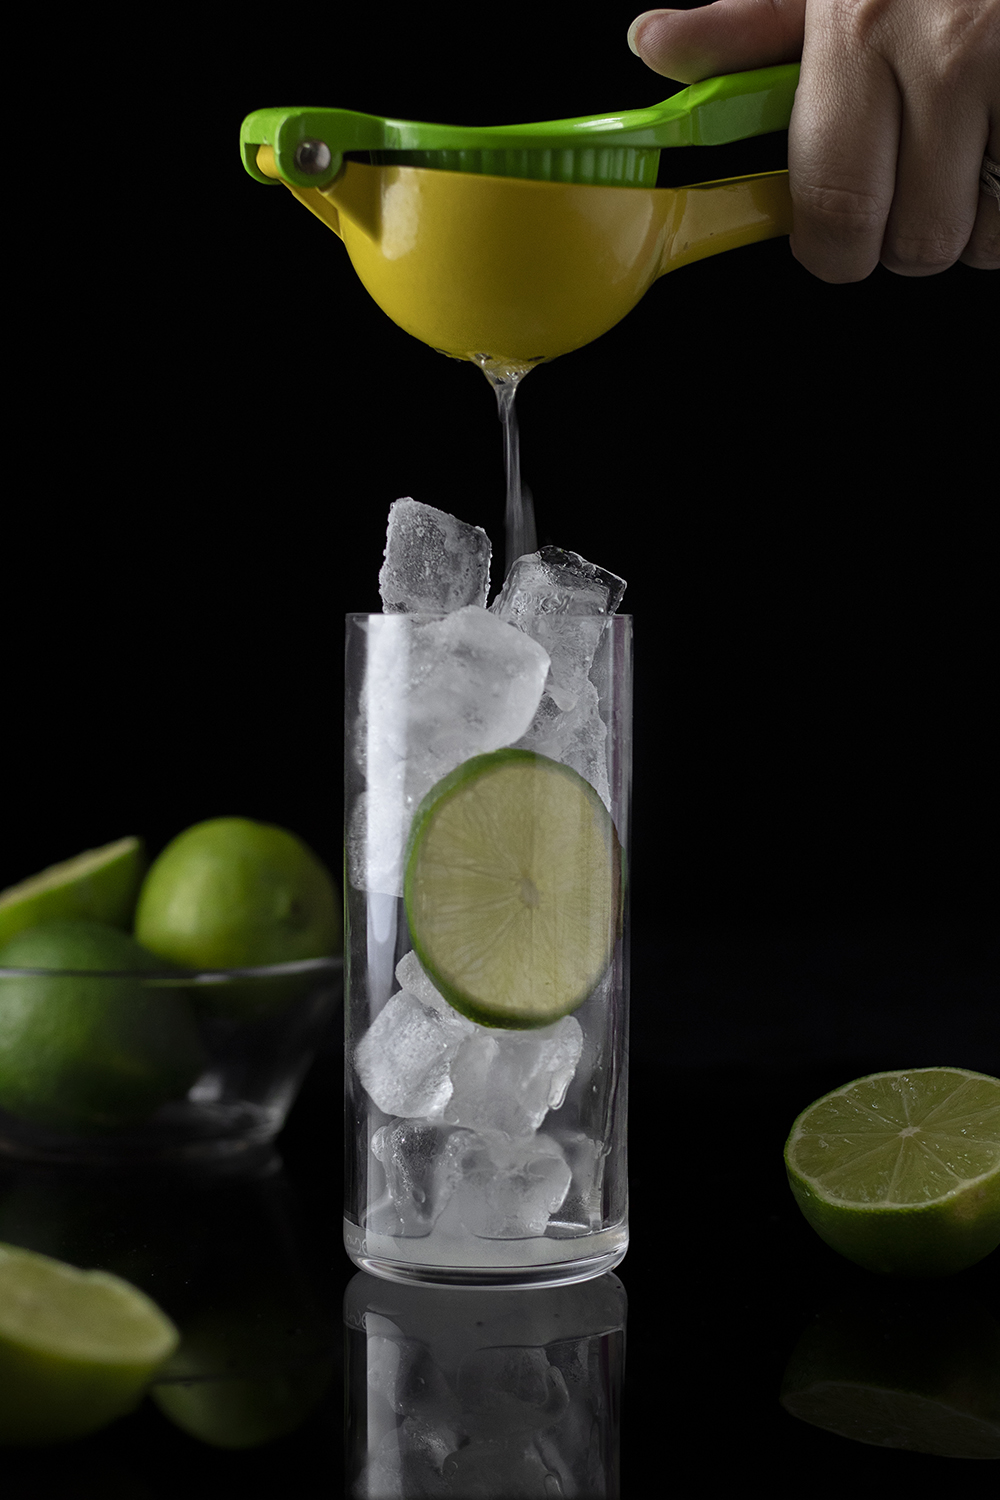 STEP TWO: Add gin and lime juice.